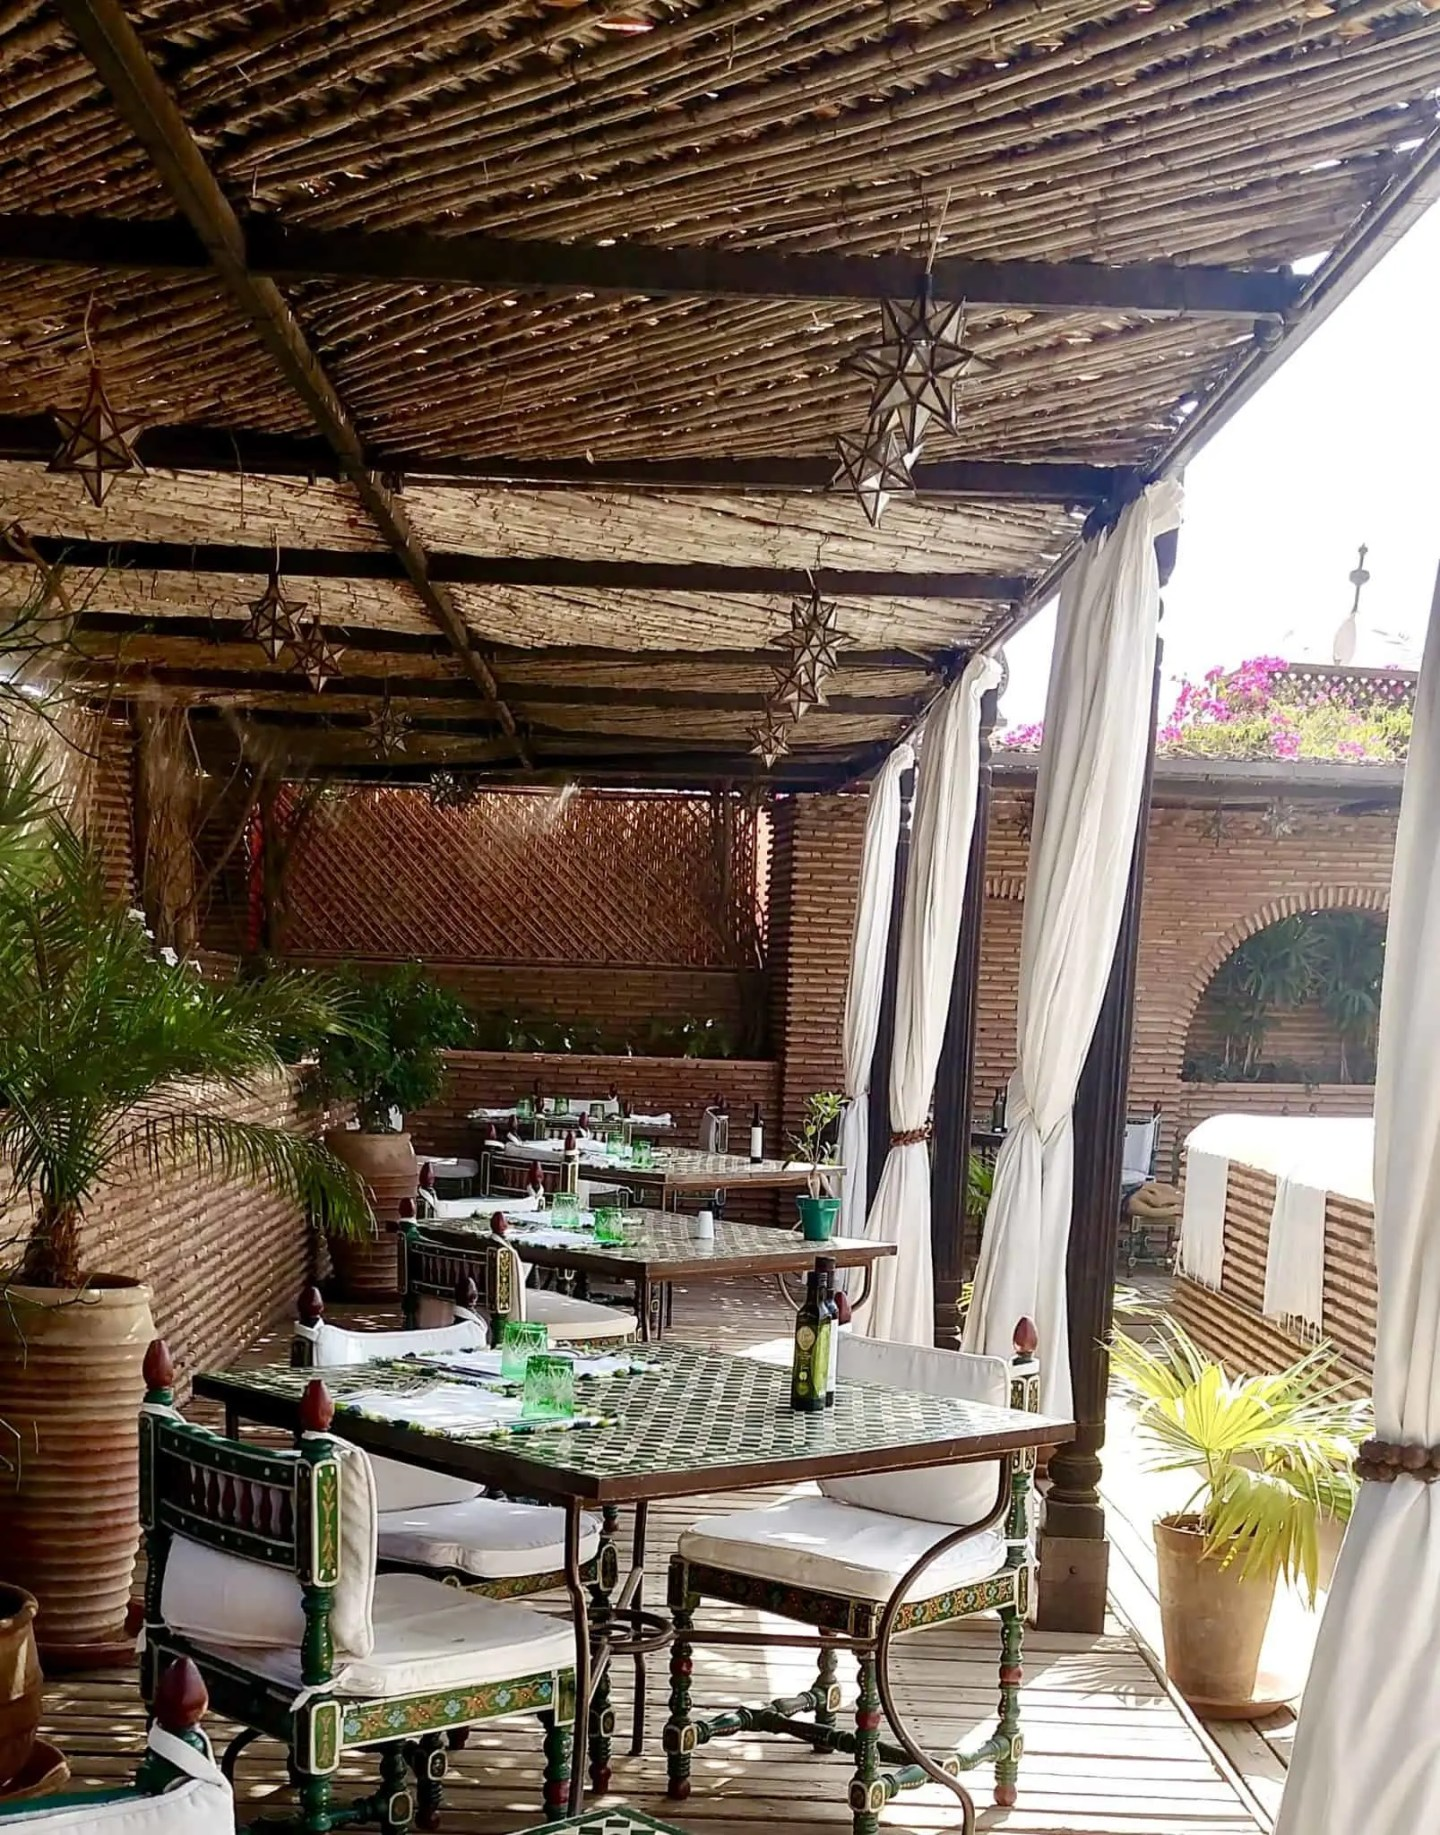 Our Tranquil Lunch at La Sultana Hotel Marrakech